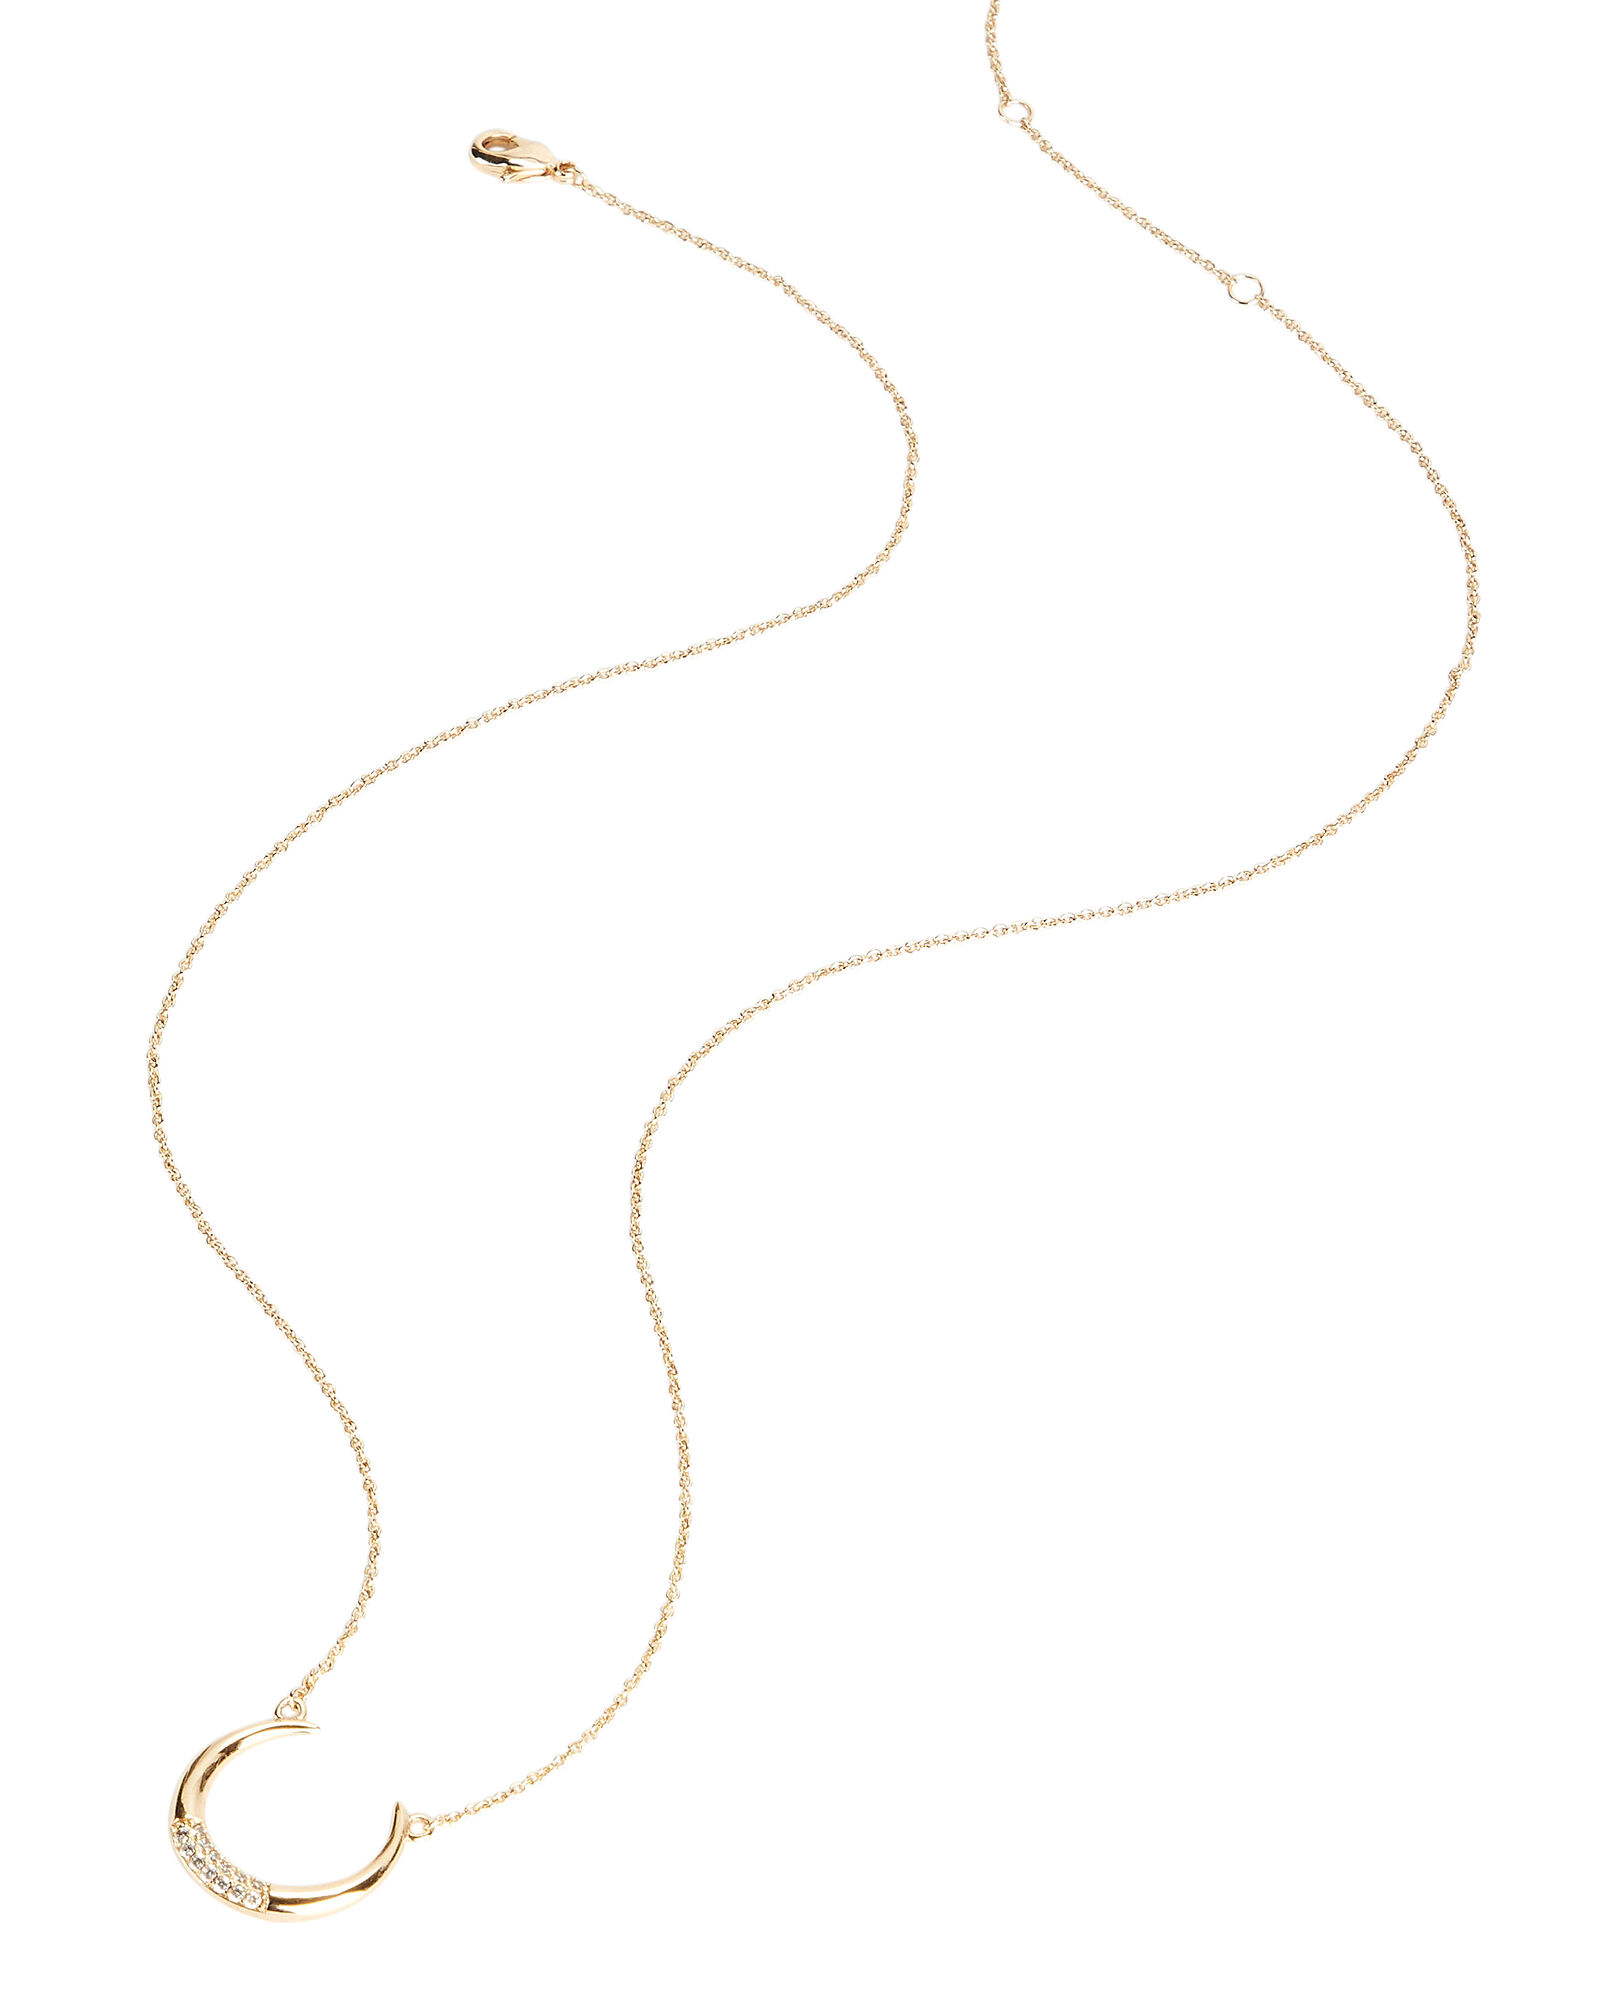 pin extras pinterest the gold auld bar necklace melanie jewelry